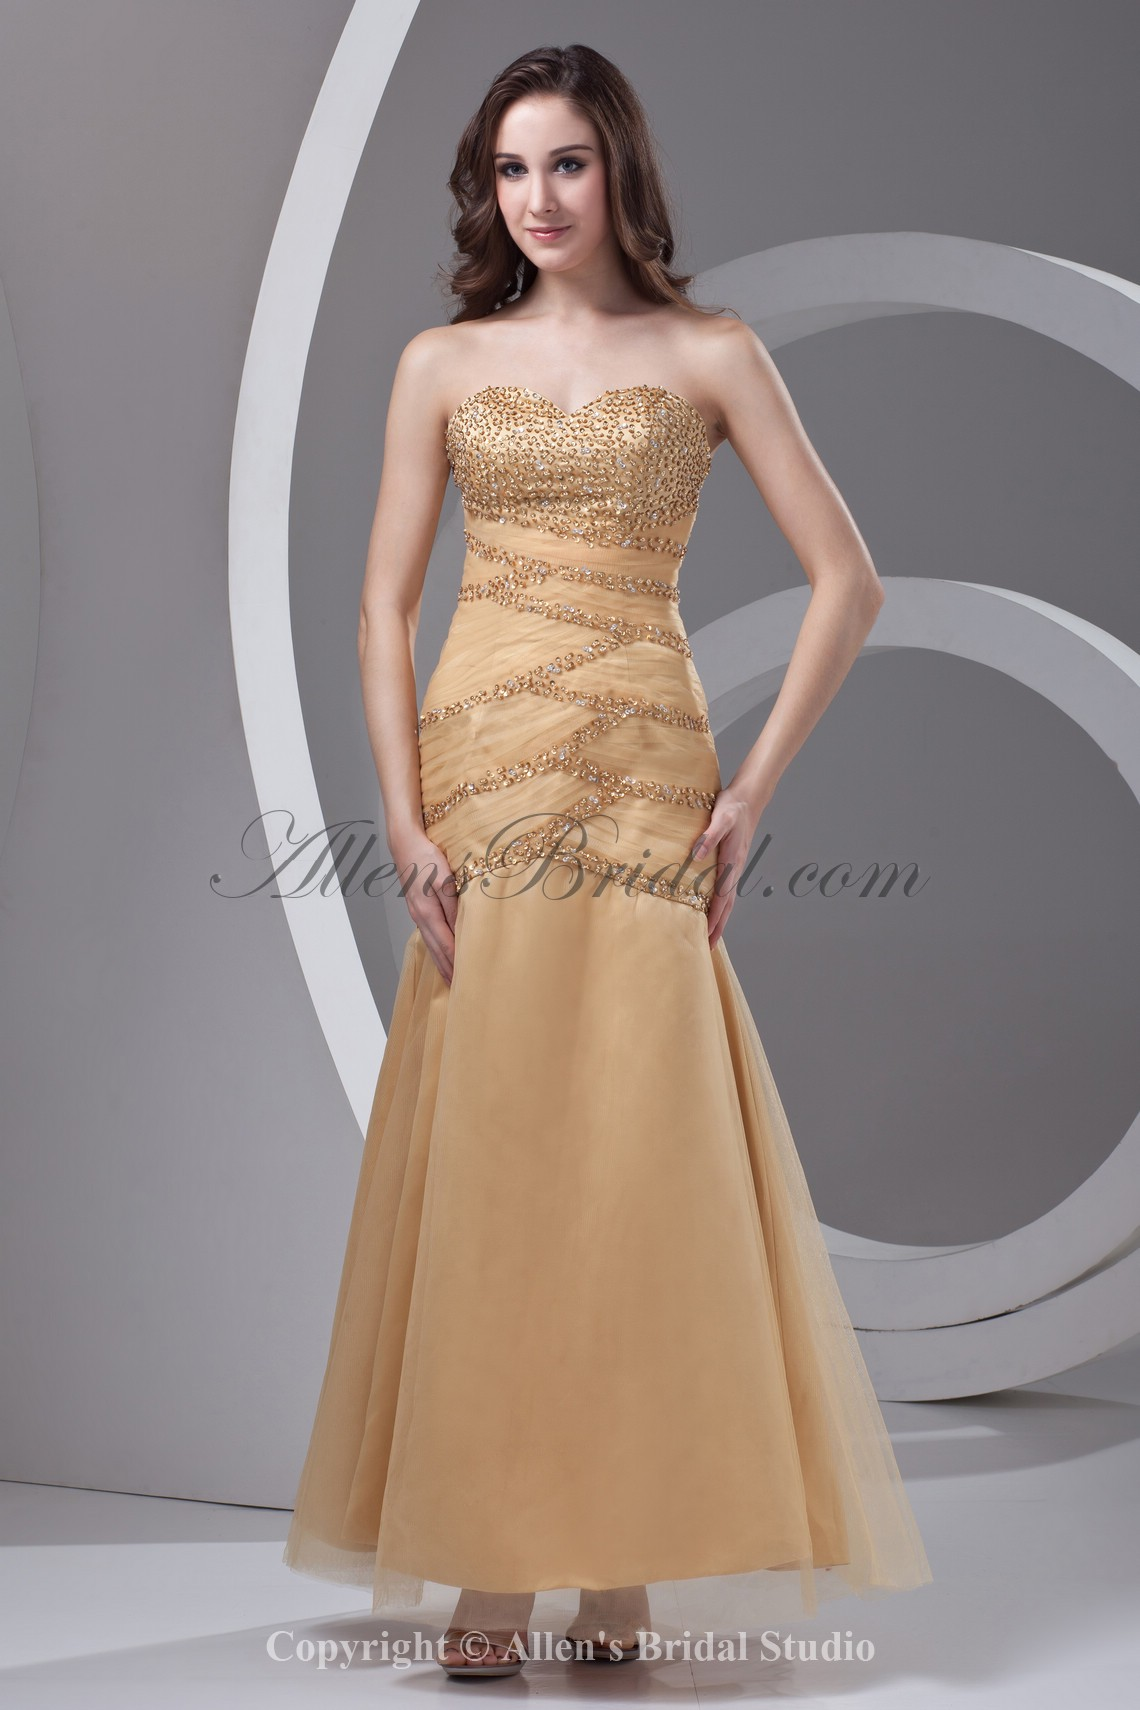 /325-2595/satin-and-net-sweetheart-a-line-ankle-length-sequins-prom-dress.jpg